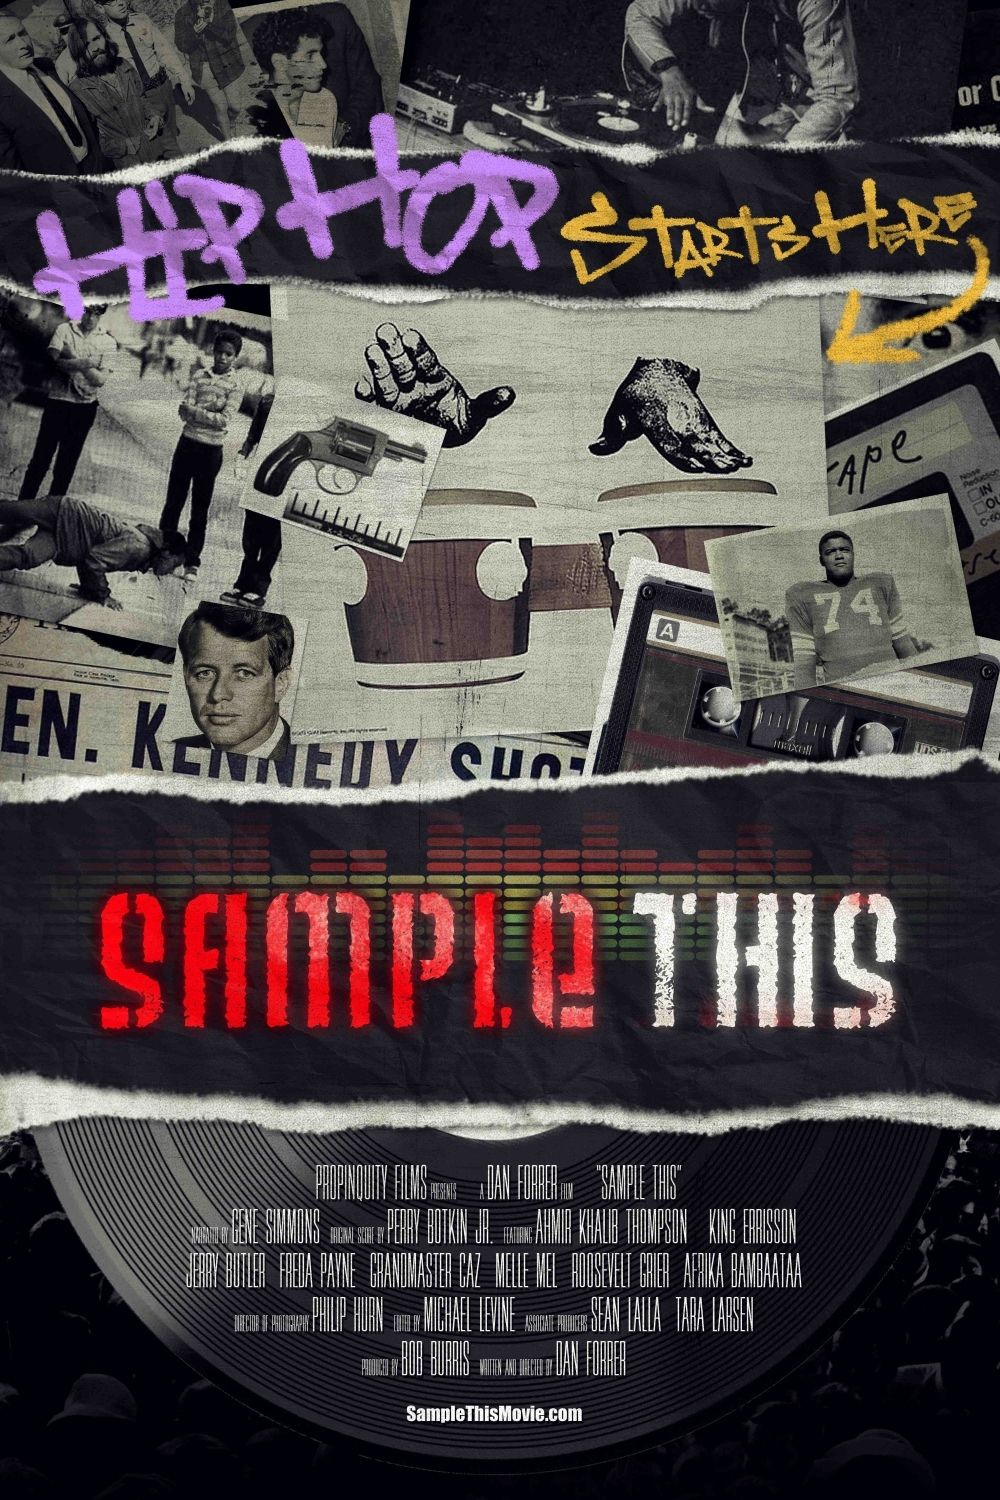 Sample This - Documentaire (2013)